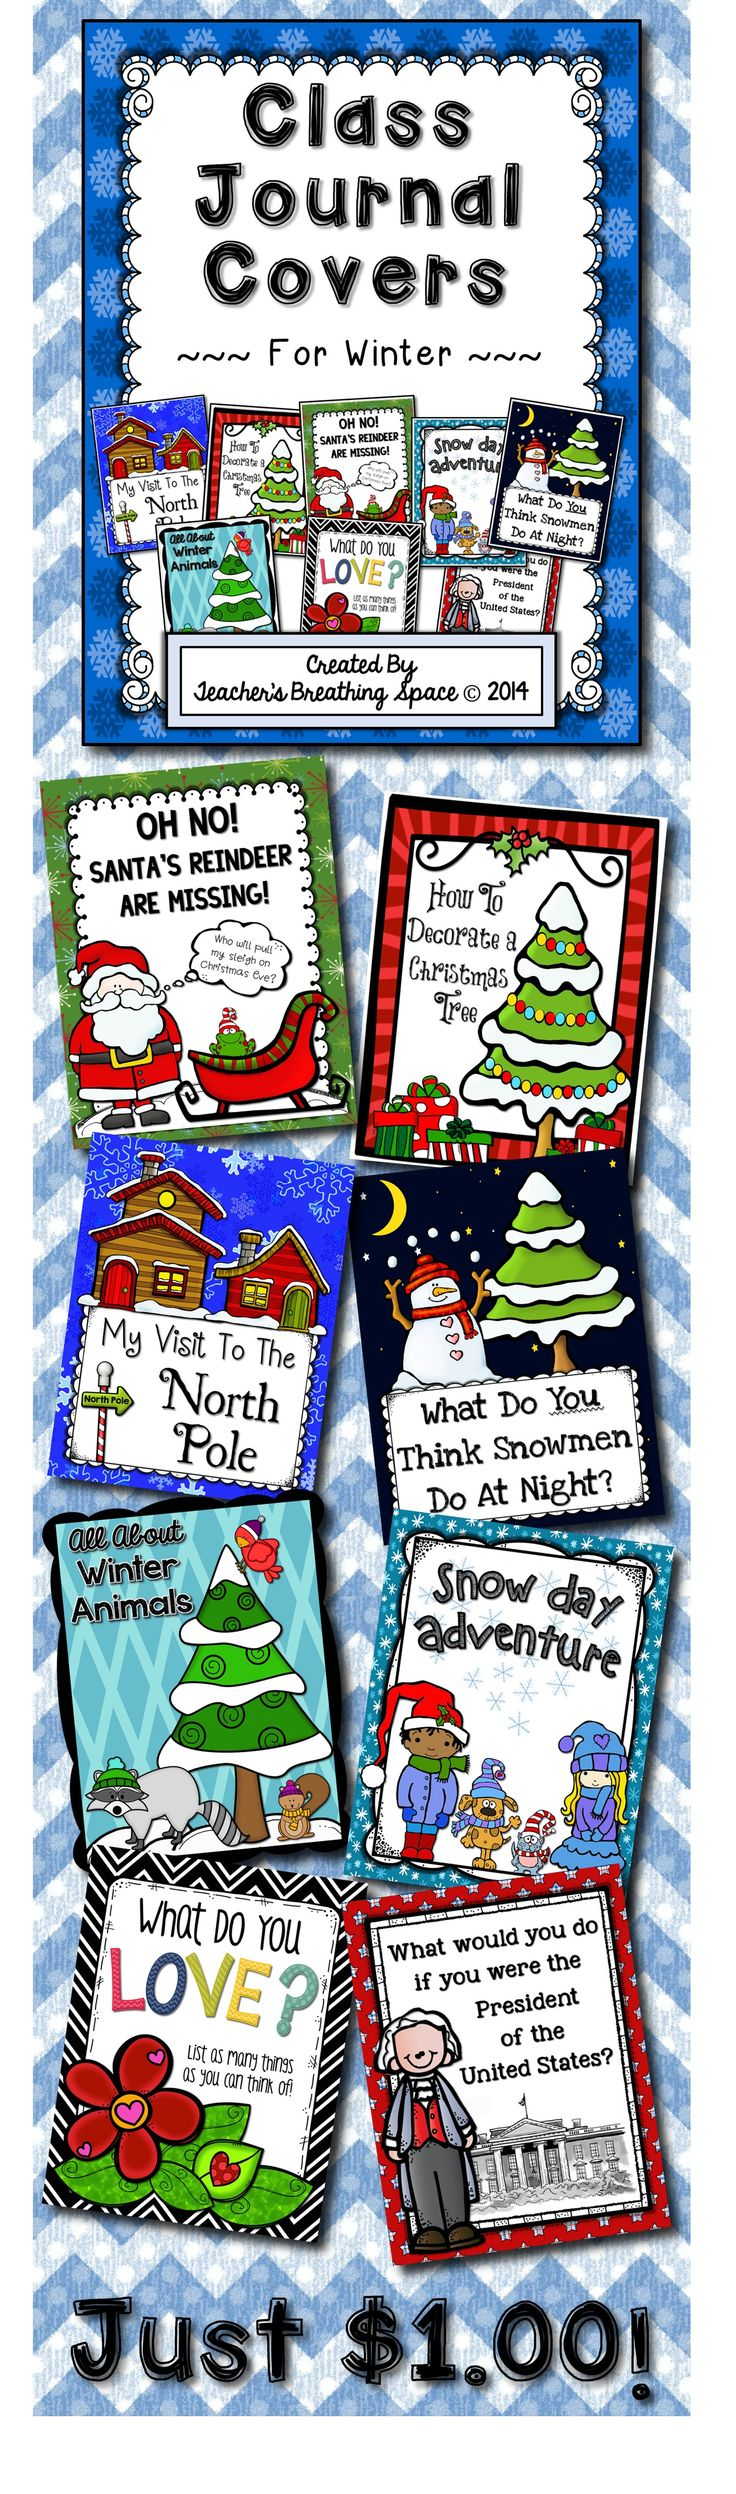 Whole Class Journal Covers for Winter --- Writing Topics for December, January and February --- Just $1.00!